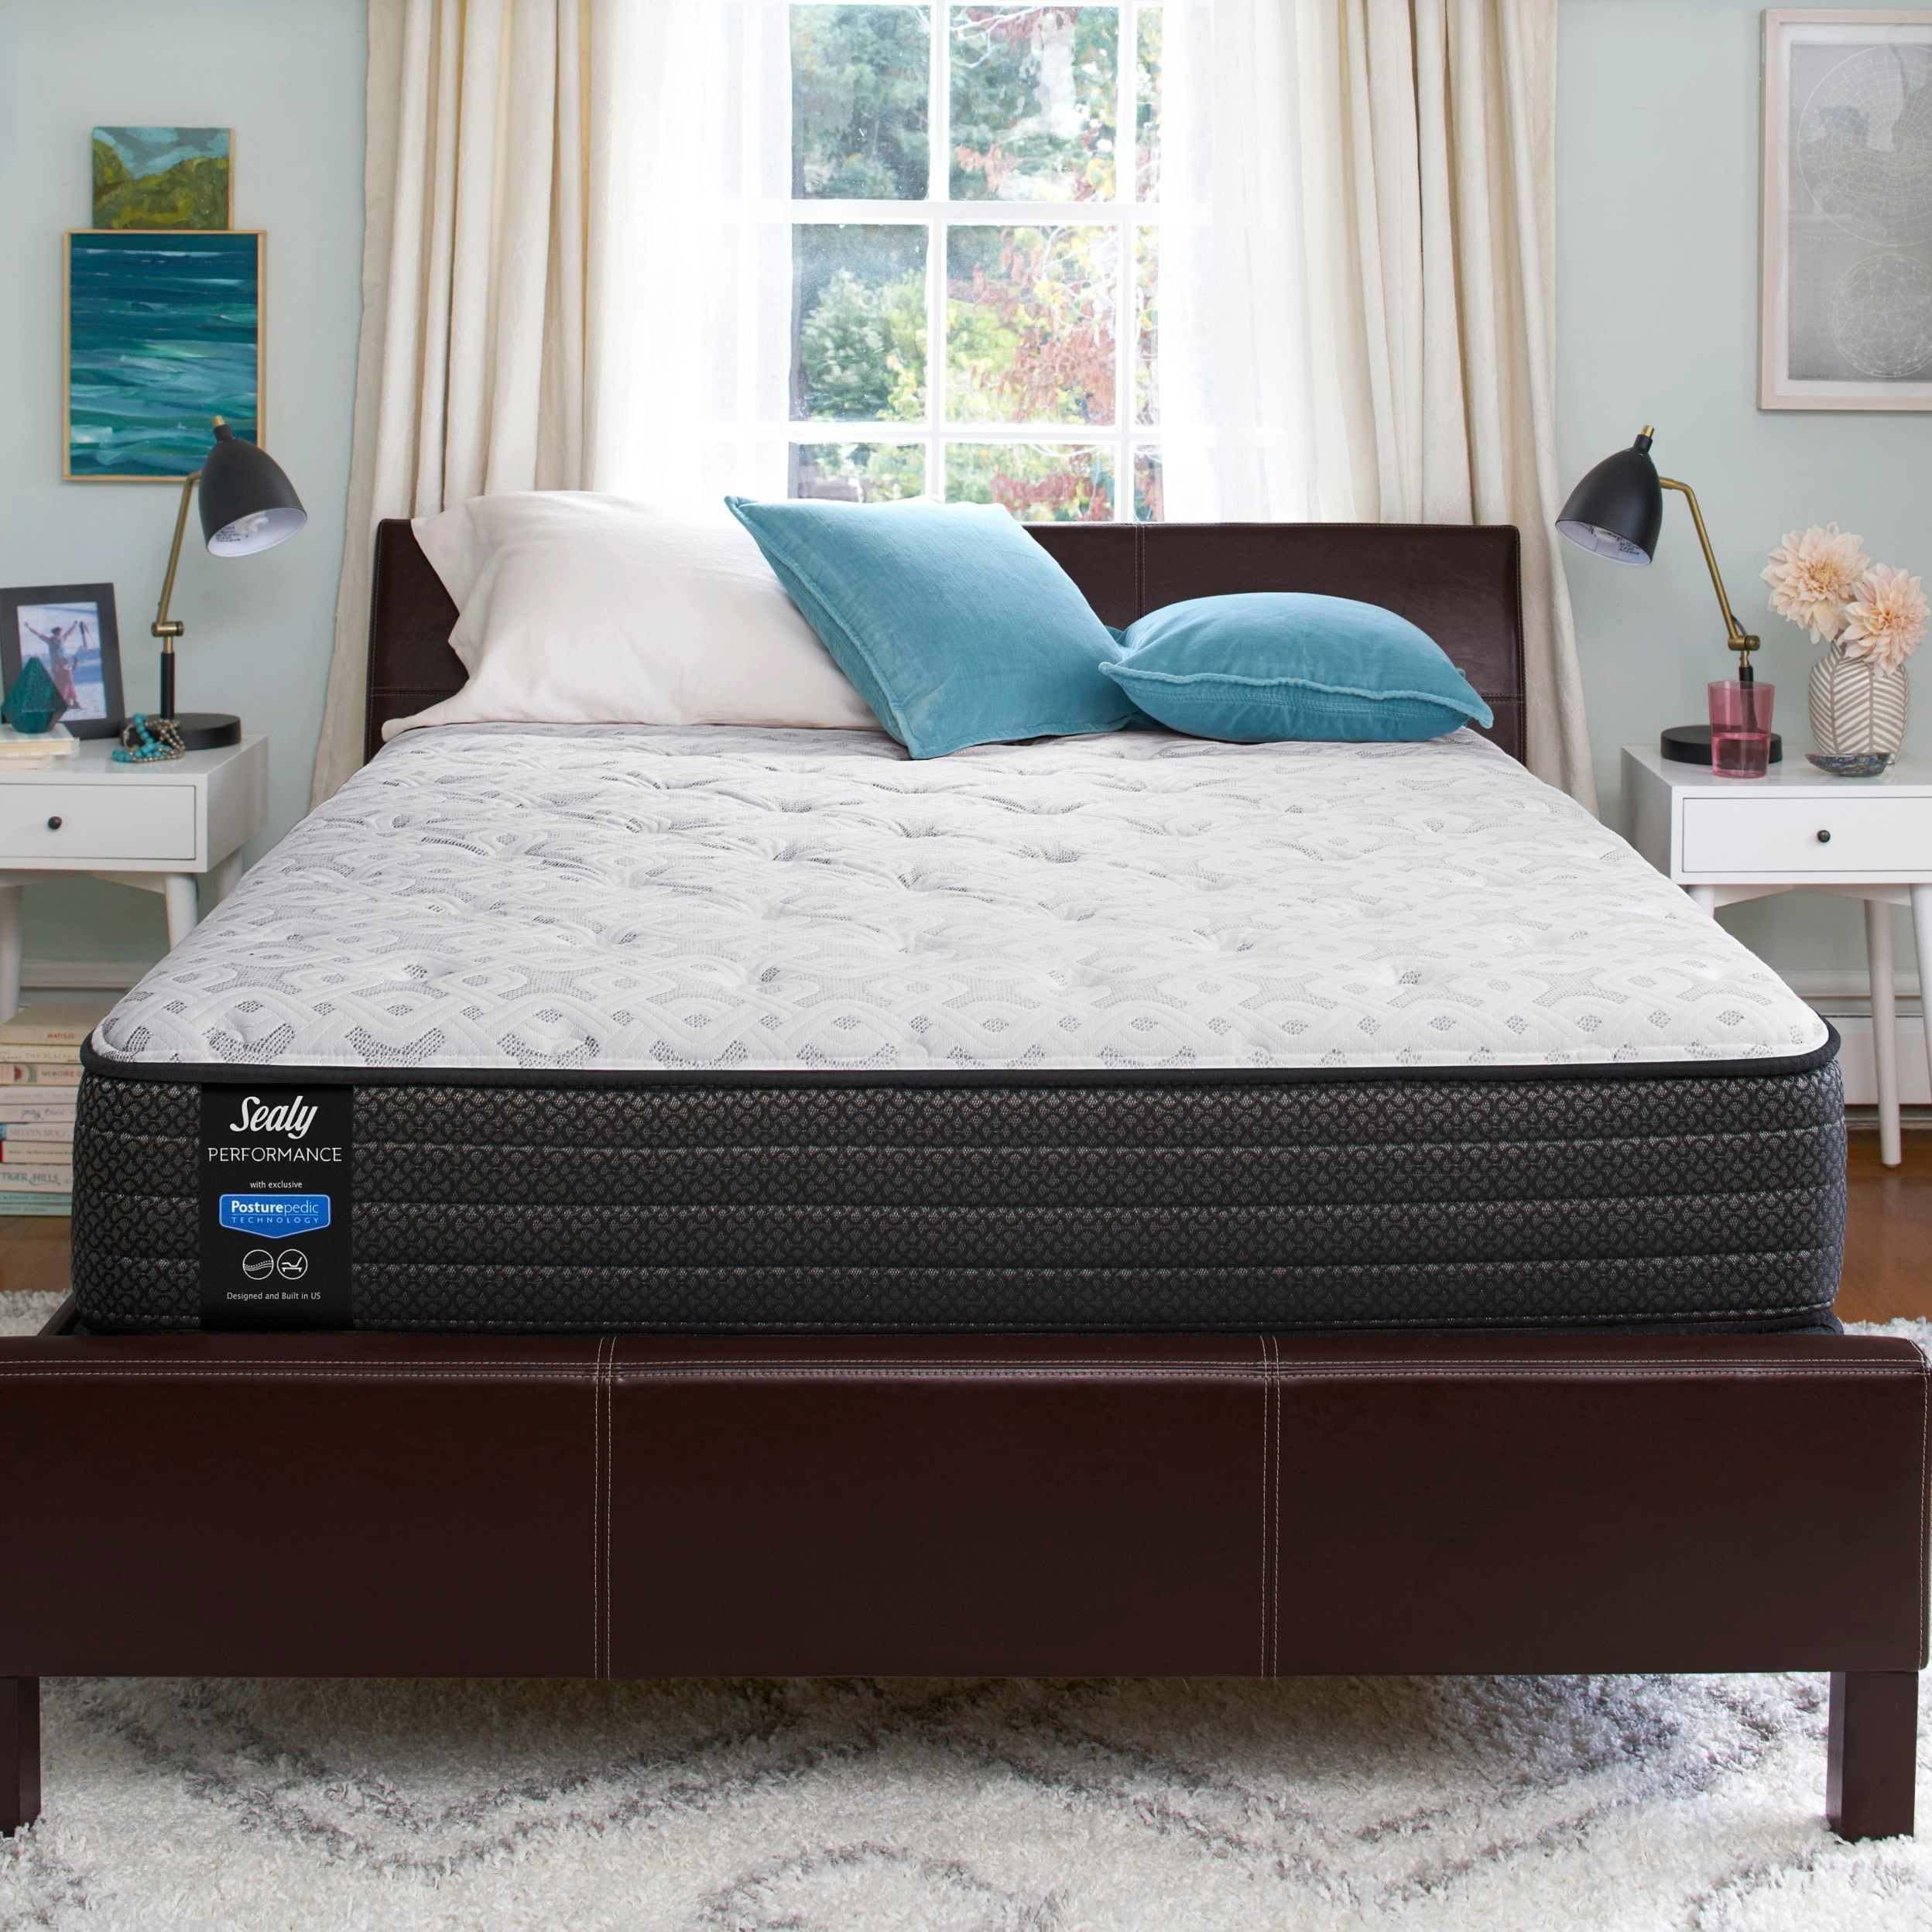 Sealy Response Performance 12 Inch Cushion Firm Mattress